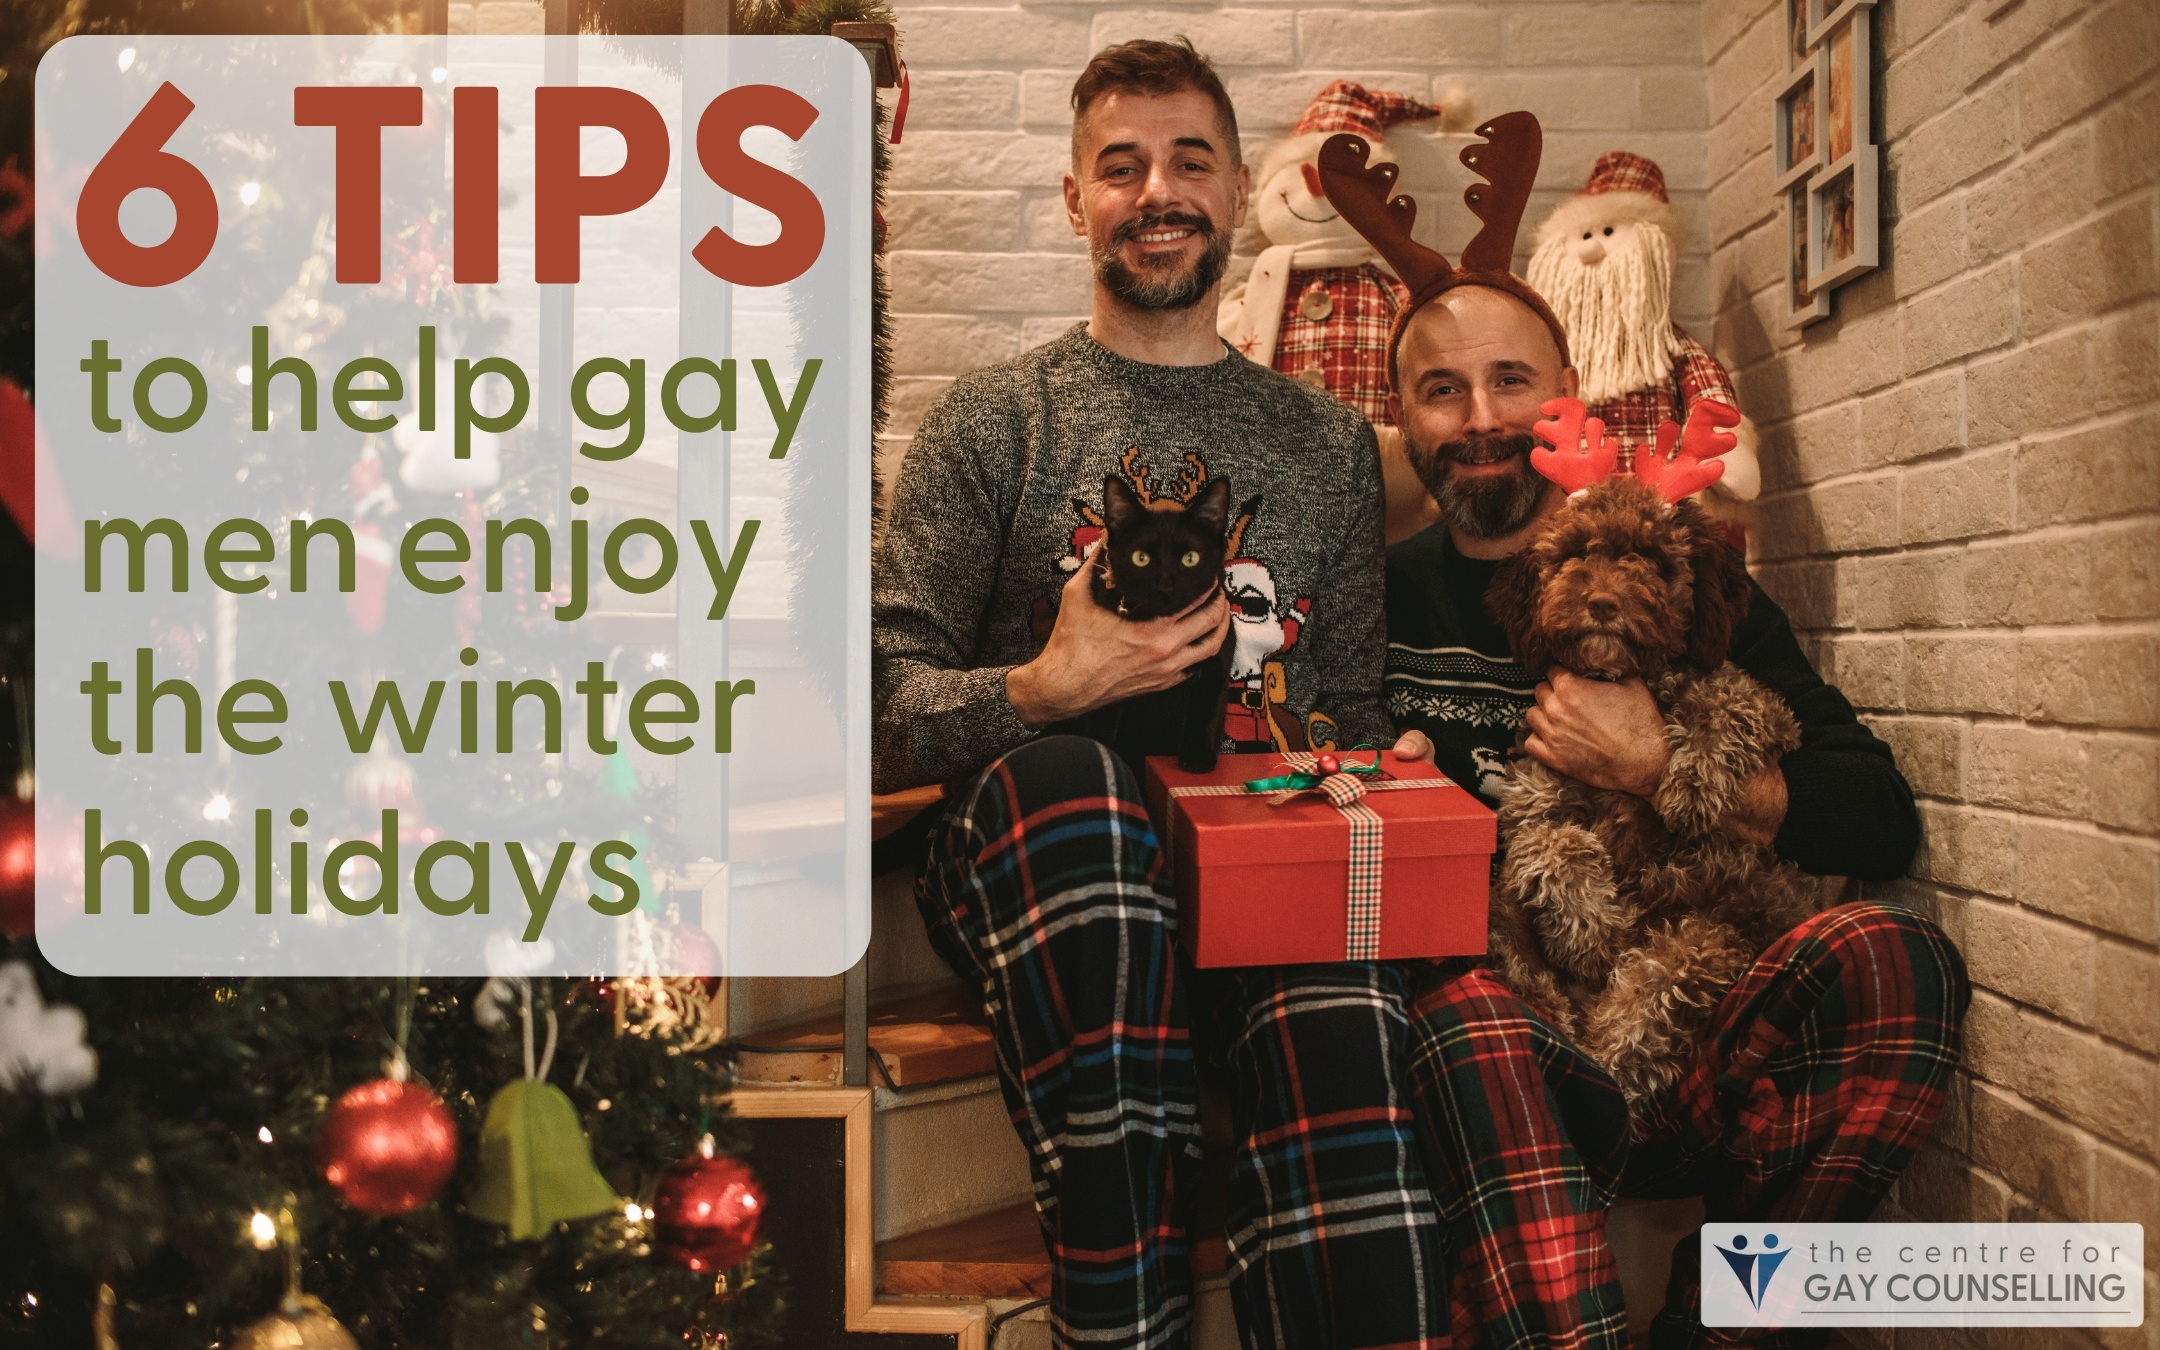 gay men counselling therapy mental health Canada winter holidays Christmas